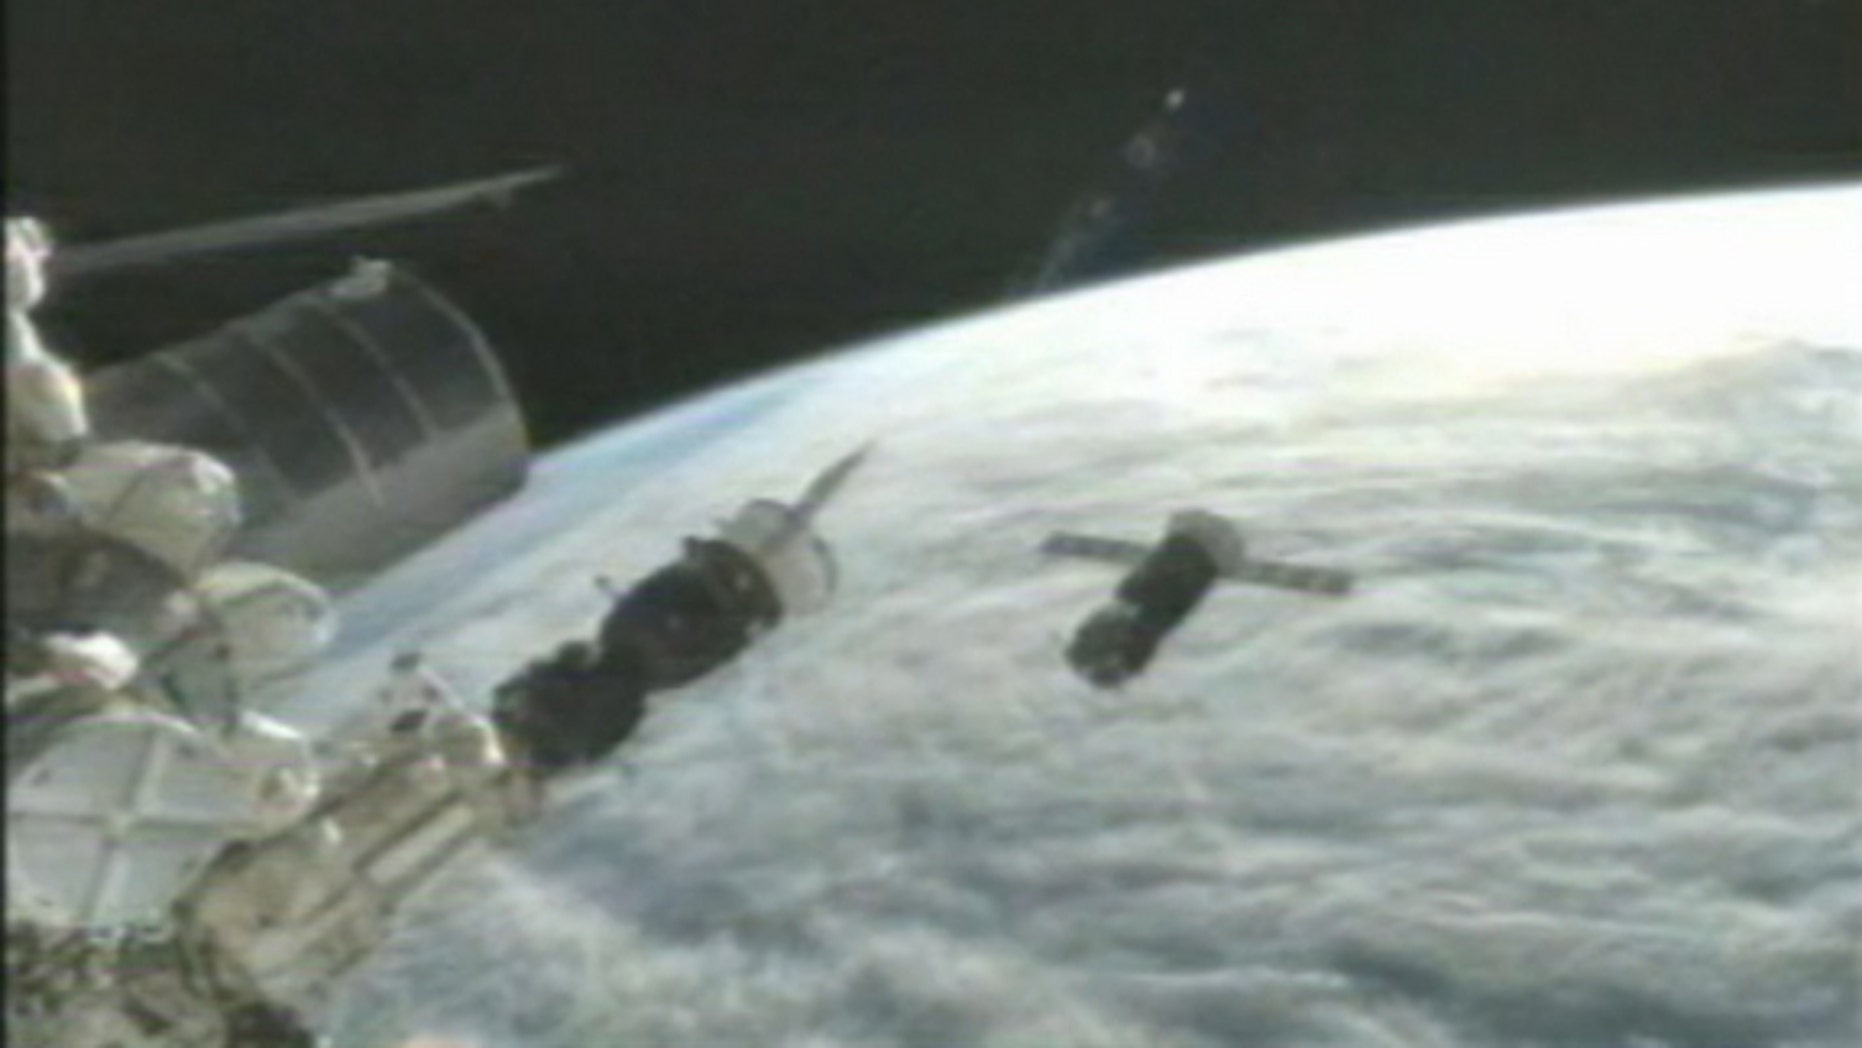 An unmanned Russian Progress 47 cargo ship used to test an upgraded automated docking system for the International Space Station failed to couple with the space base.